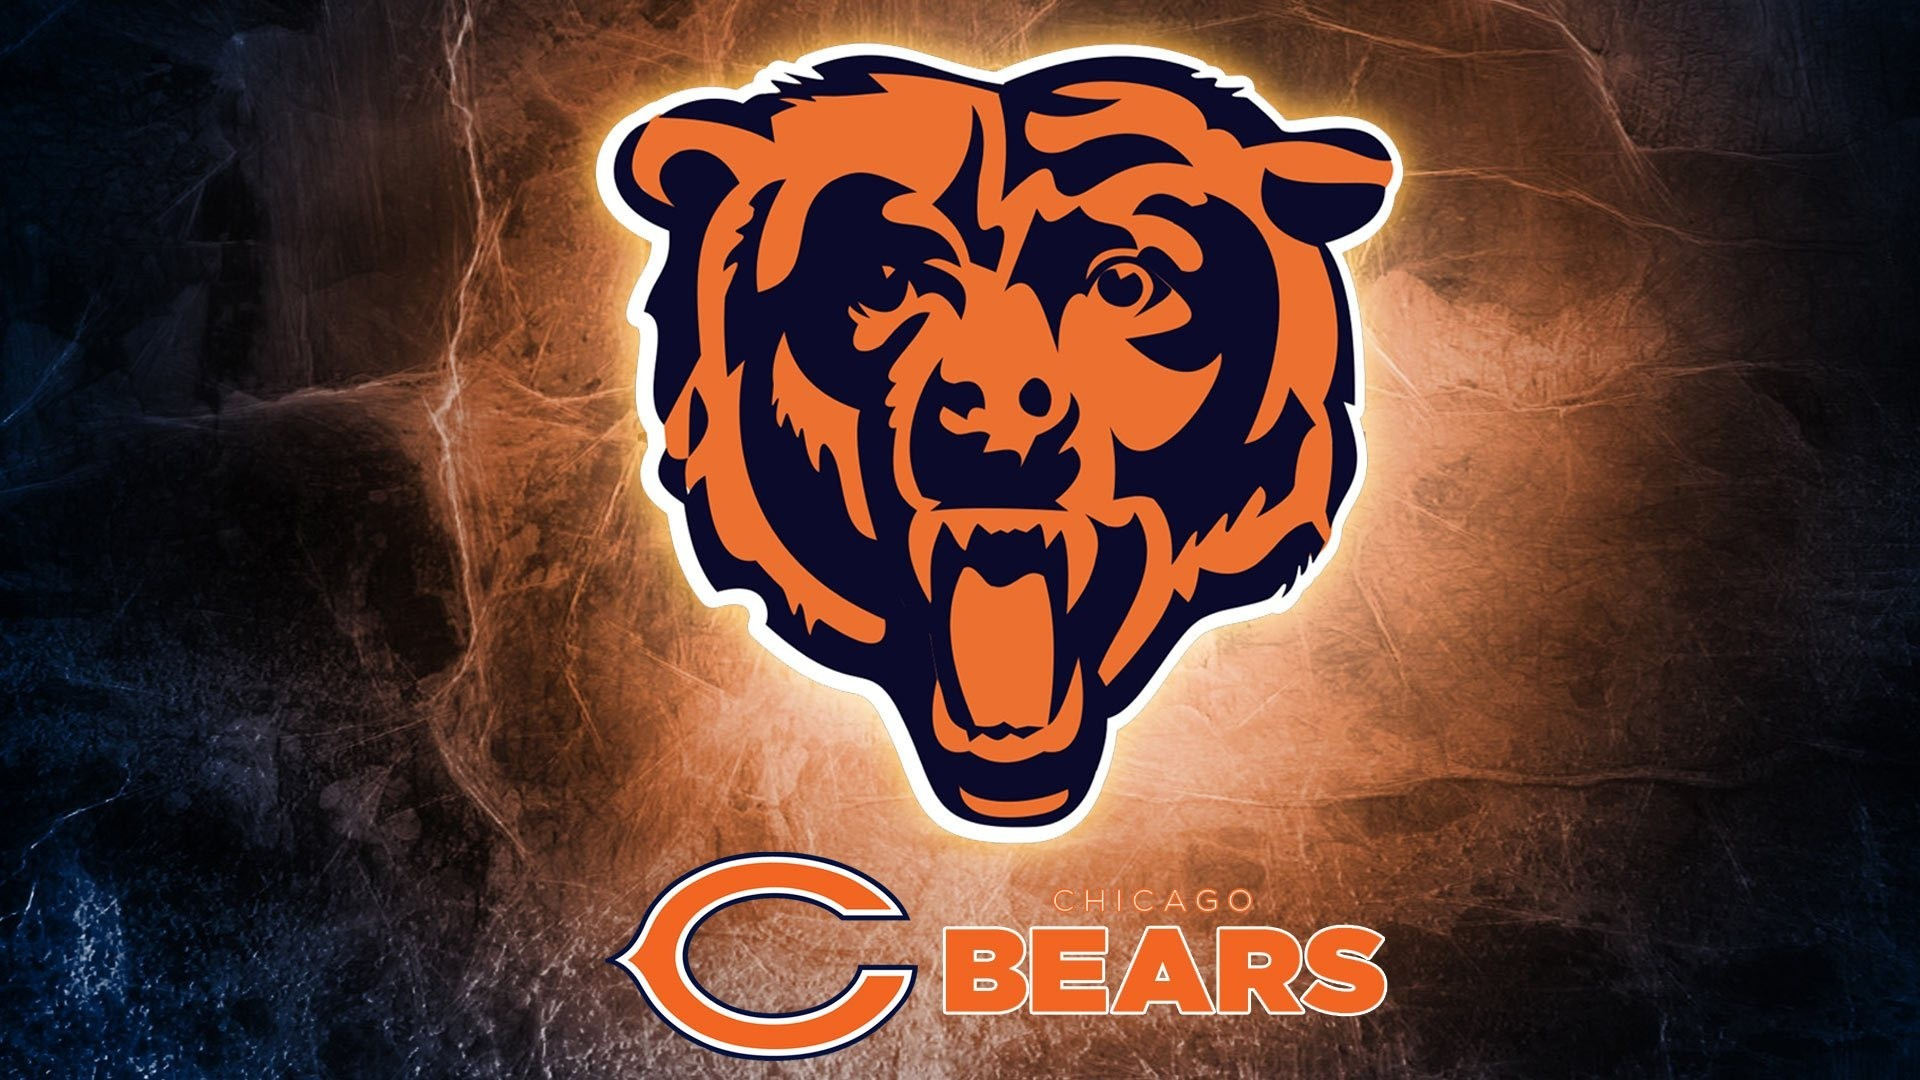 1920x1080 HD Chicago Bears Wallpapers